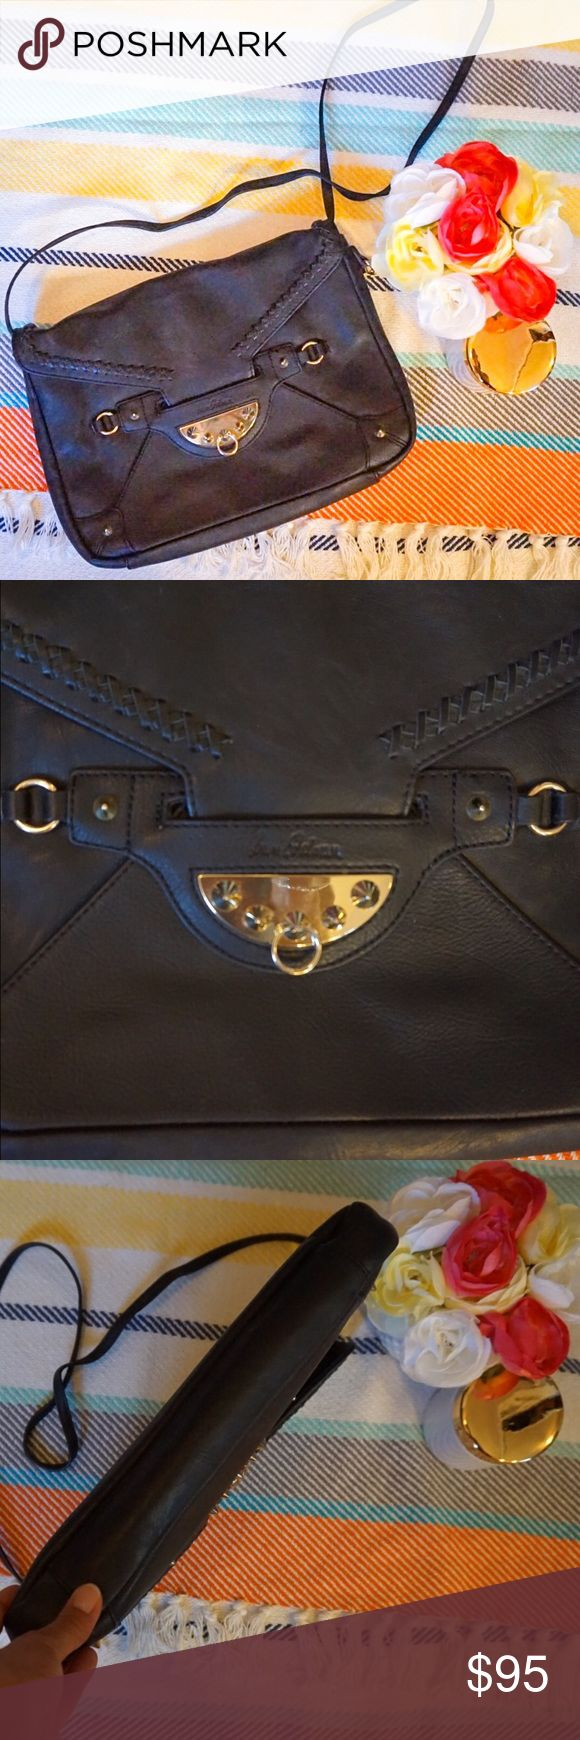 """🎉Sale🎉 Sam Edelman large envelope clutch Sam Edelman Marais Blair large envelope clutch. Studded accents make quite a statement on this beautiful leather bag. Long strap, can be used as cross-body bag.  Light wear on strap from where it had been tied to shorten length of strap. Not noticeable but I like to disclose anyway. Excellent used condition. Approx 13"""" wide, 10"""" high Bags Crossbody Bags"""